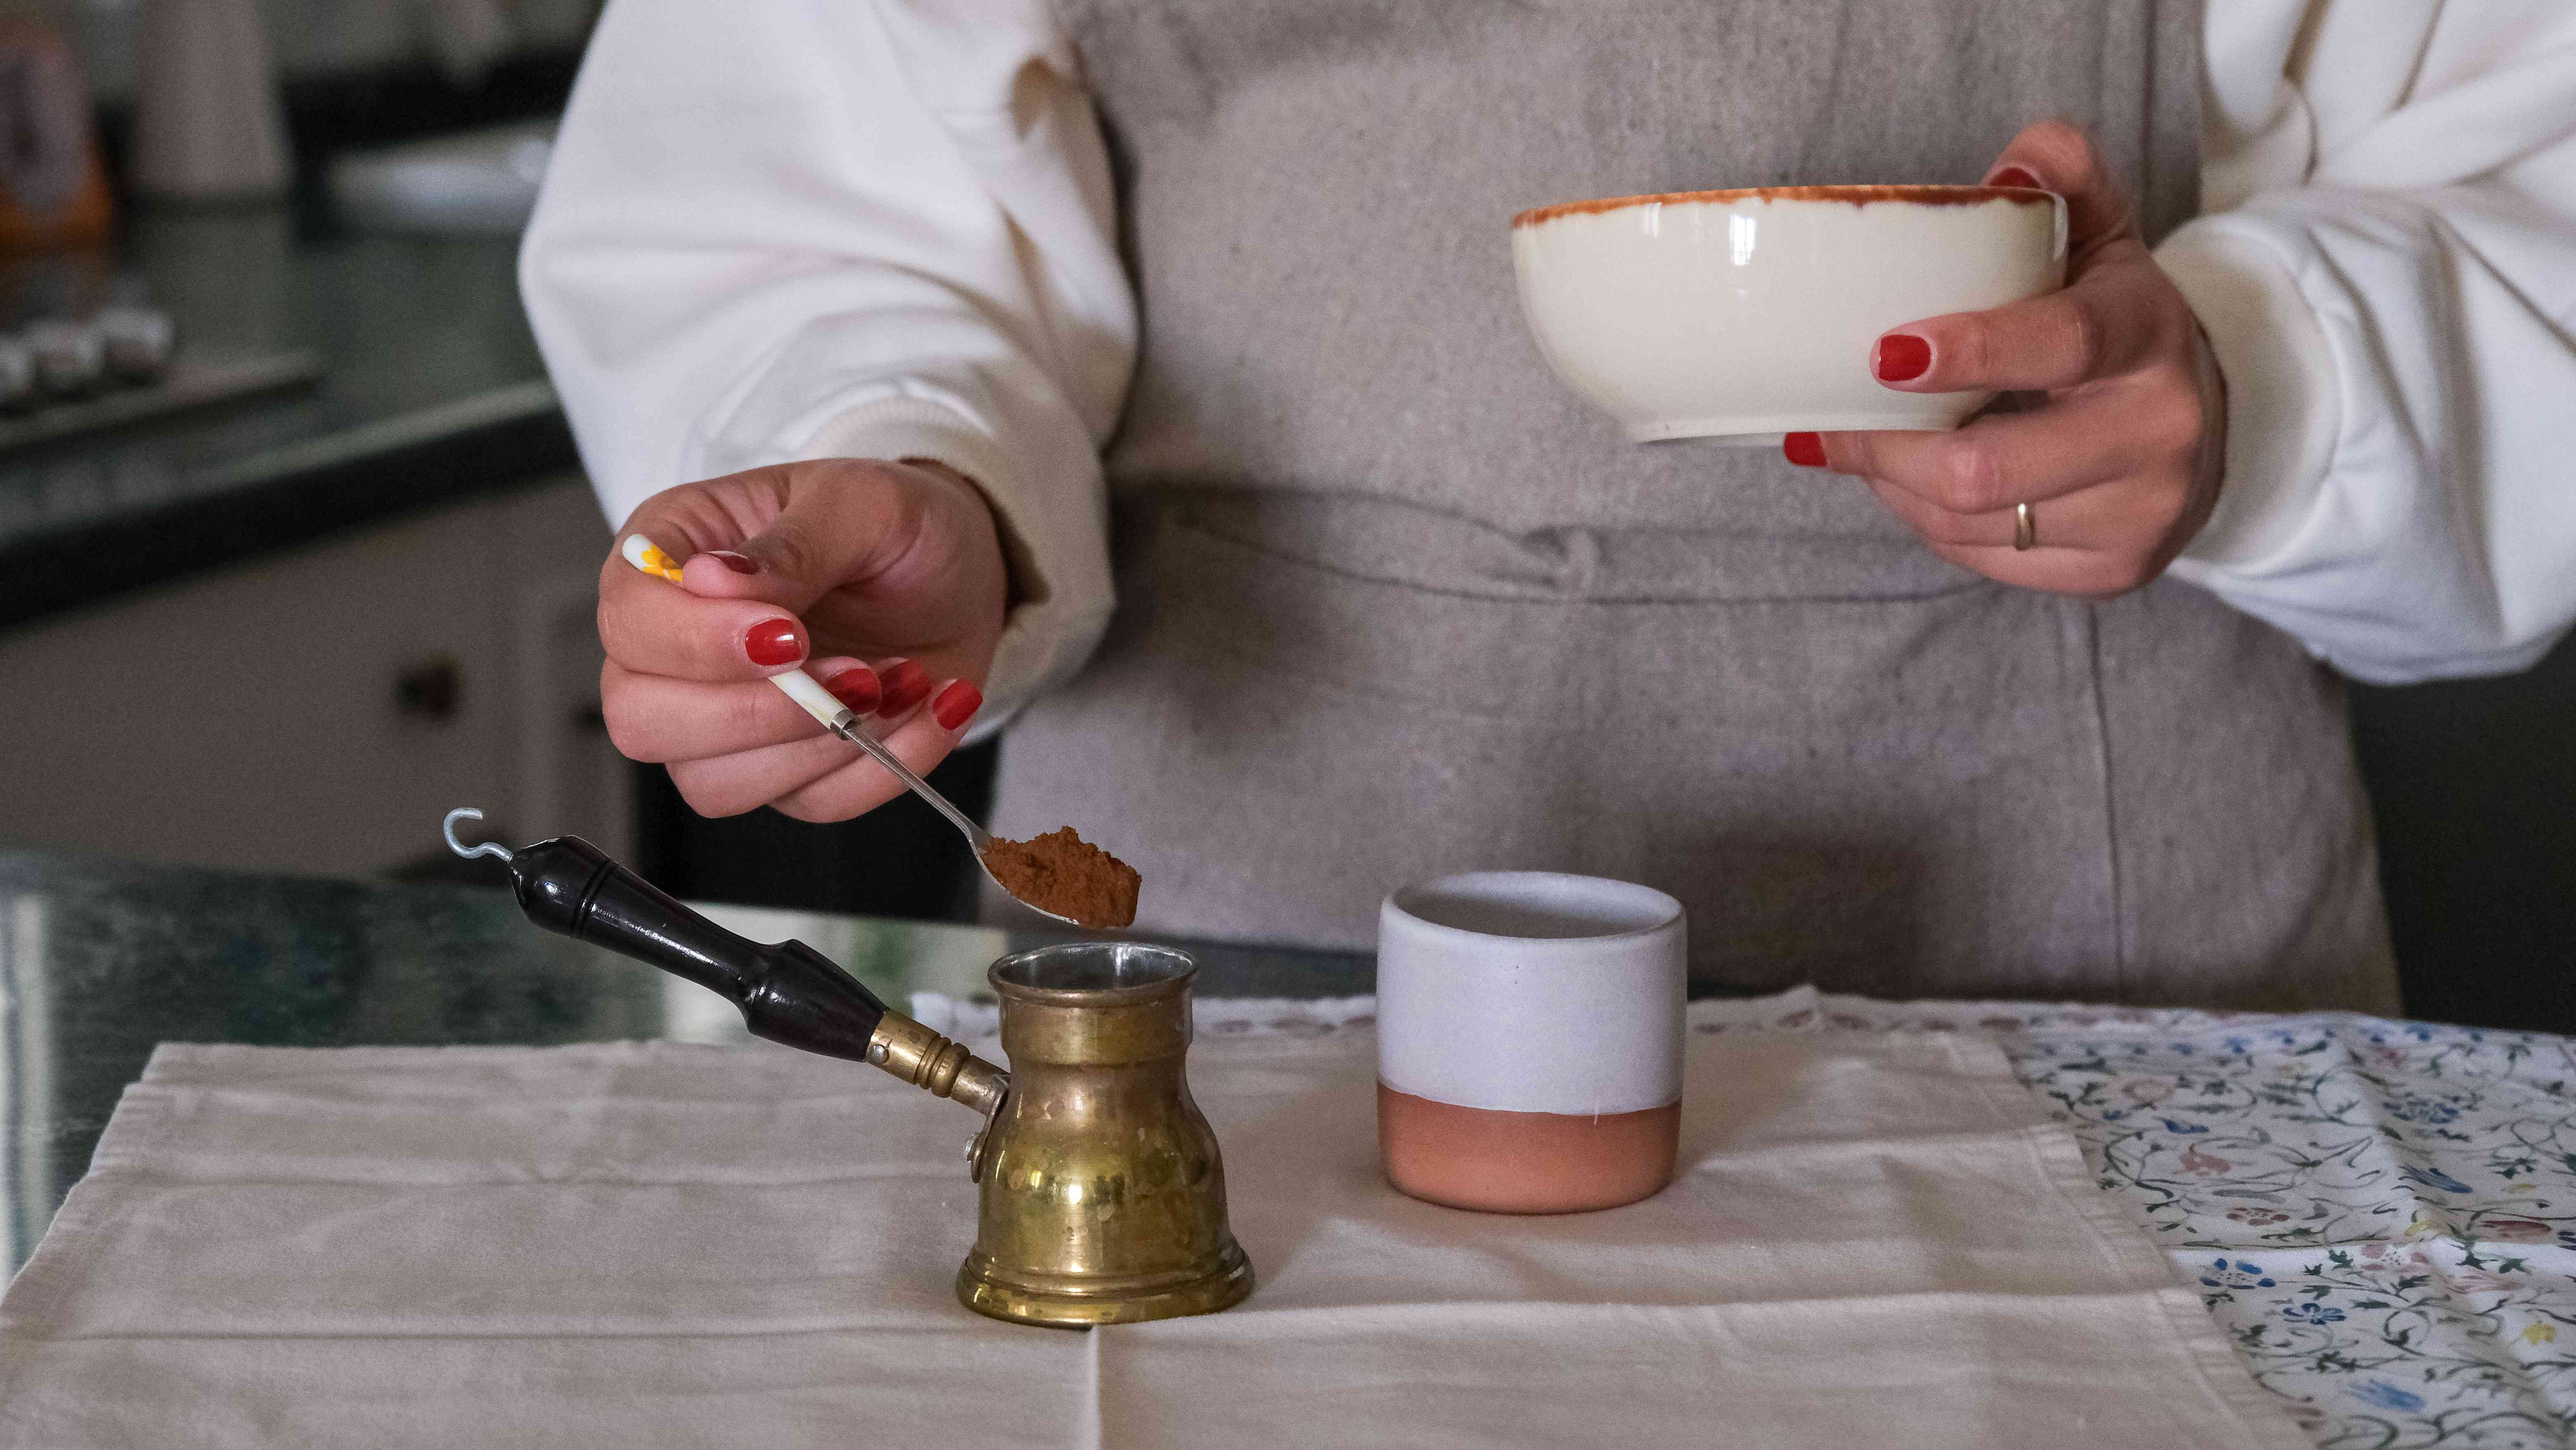 waist shot of person preparing Turkish coffee with ceramic cup and brass Turkish coffee pot